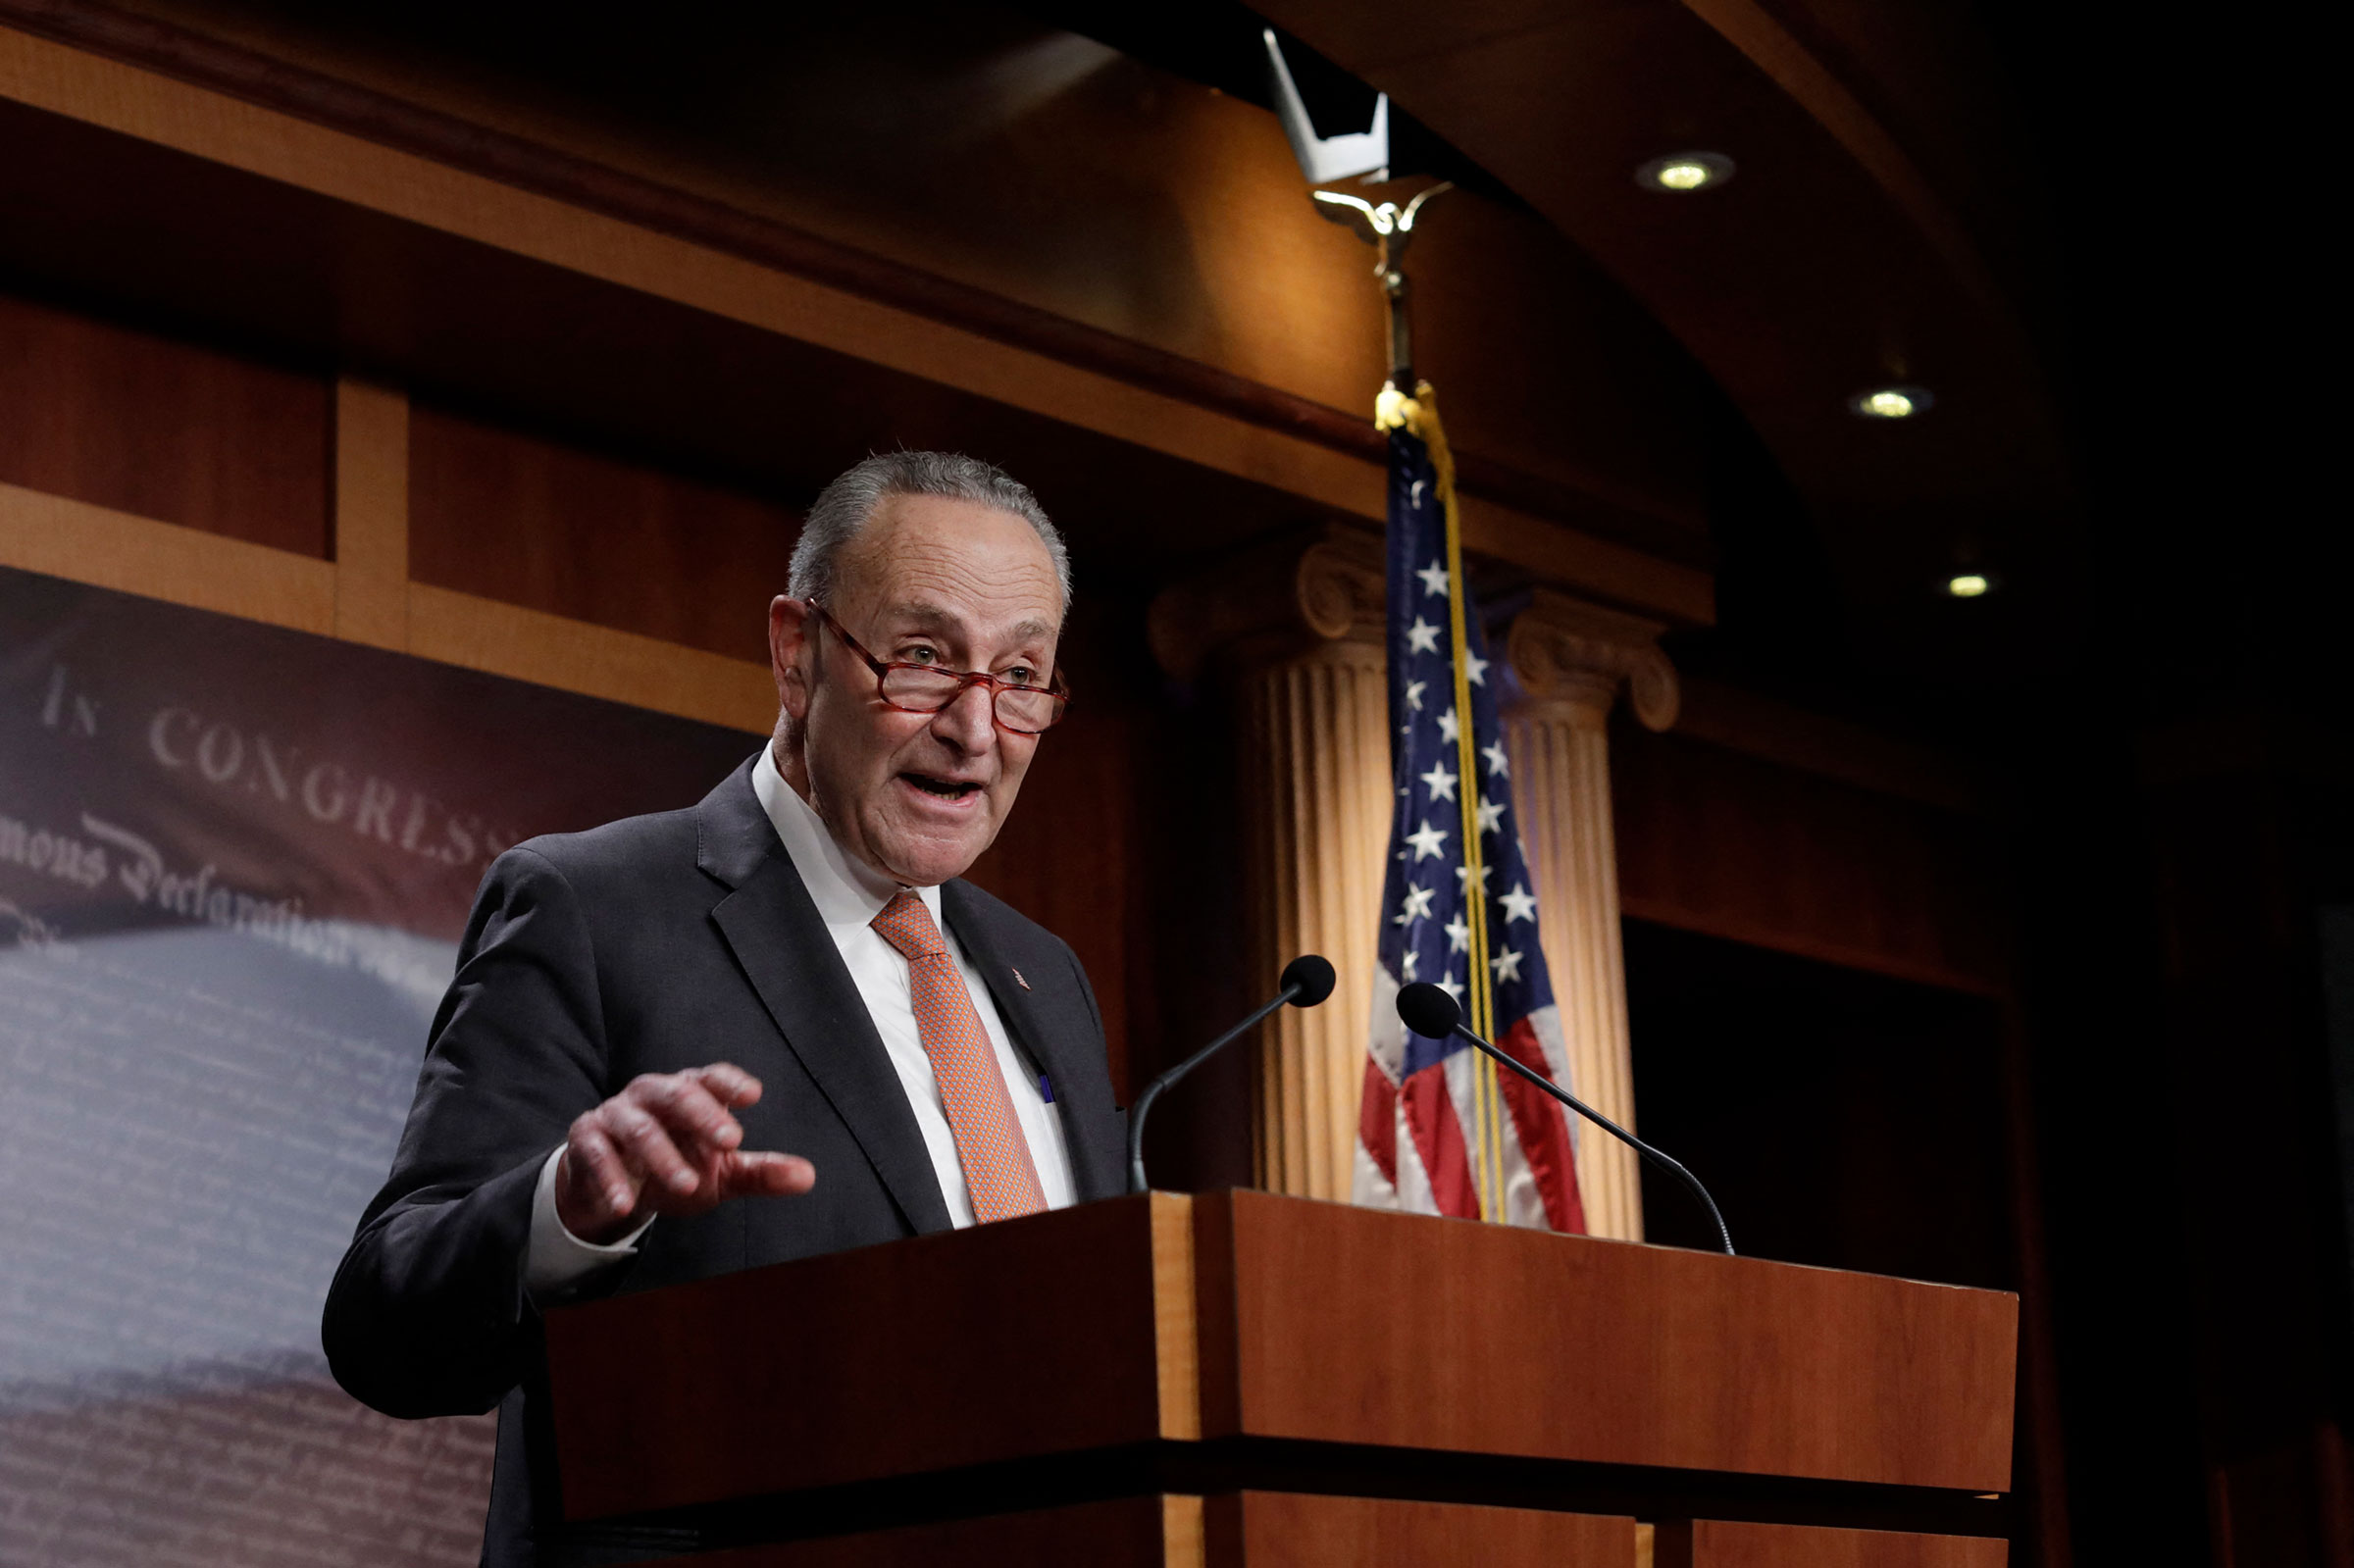 Senate Minority Leader Chuck Schumer speaks during a press conference with members of the House Democratic Caucus on Capitol Hill in Washington on Dec. 8, 2020.